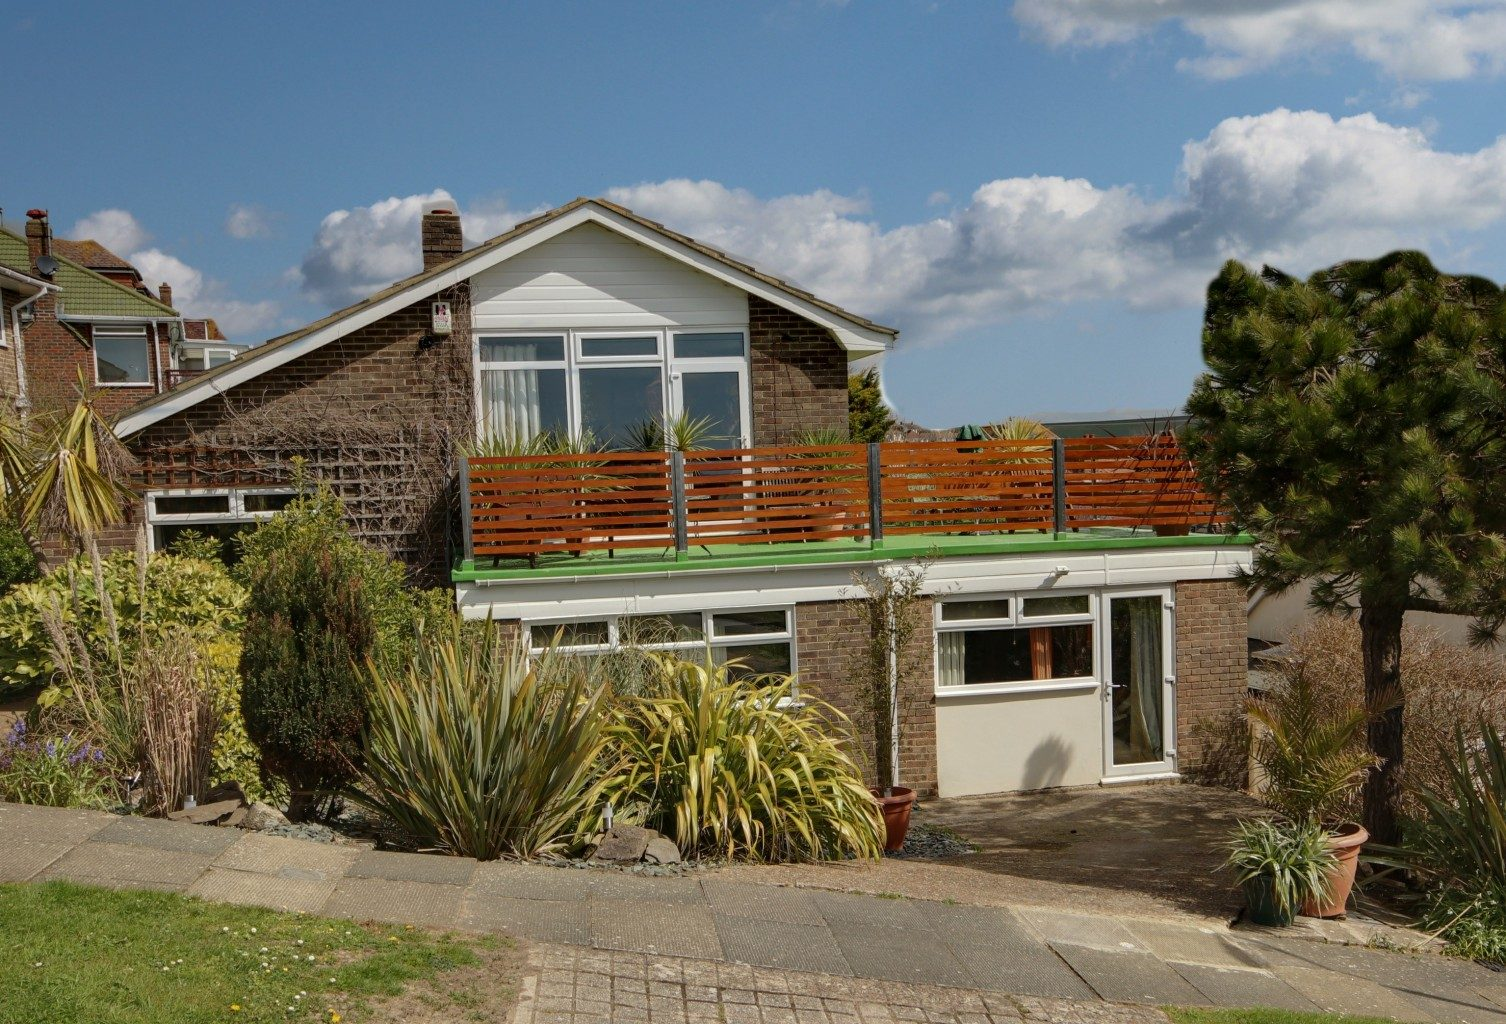 Image of the front of a house in Saltdean| Open House Saltdean